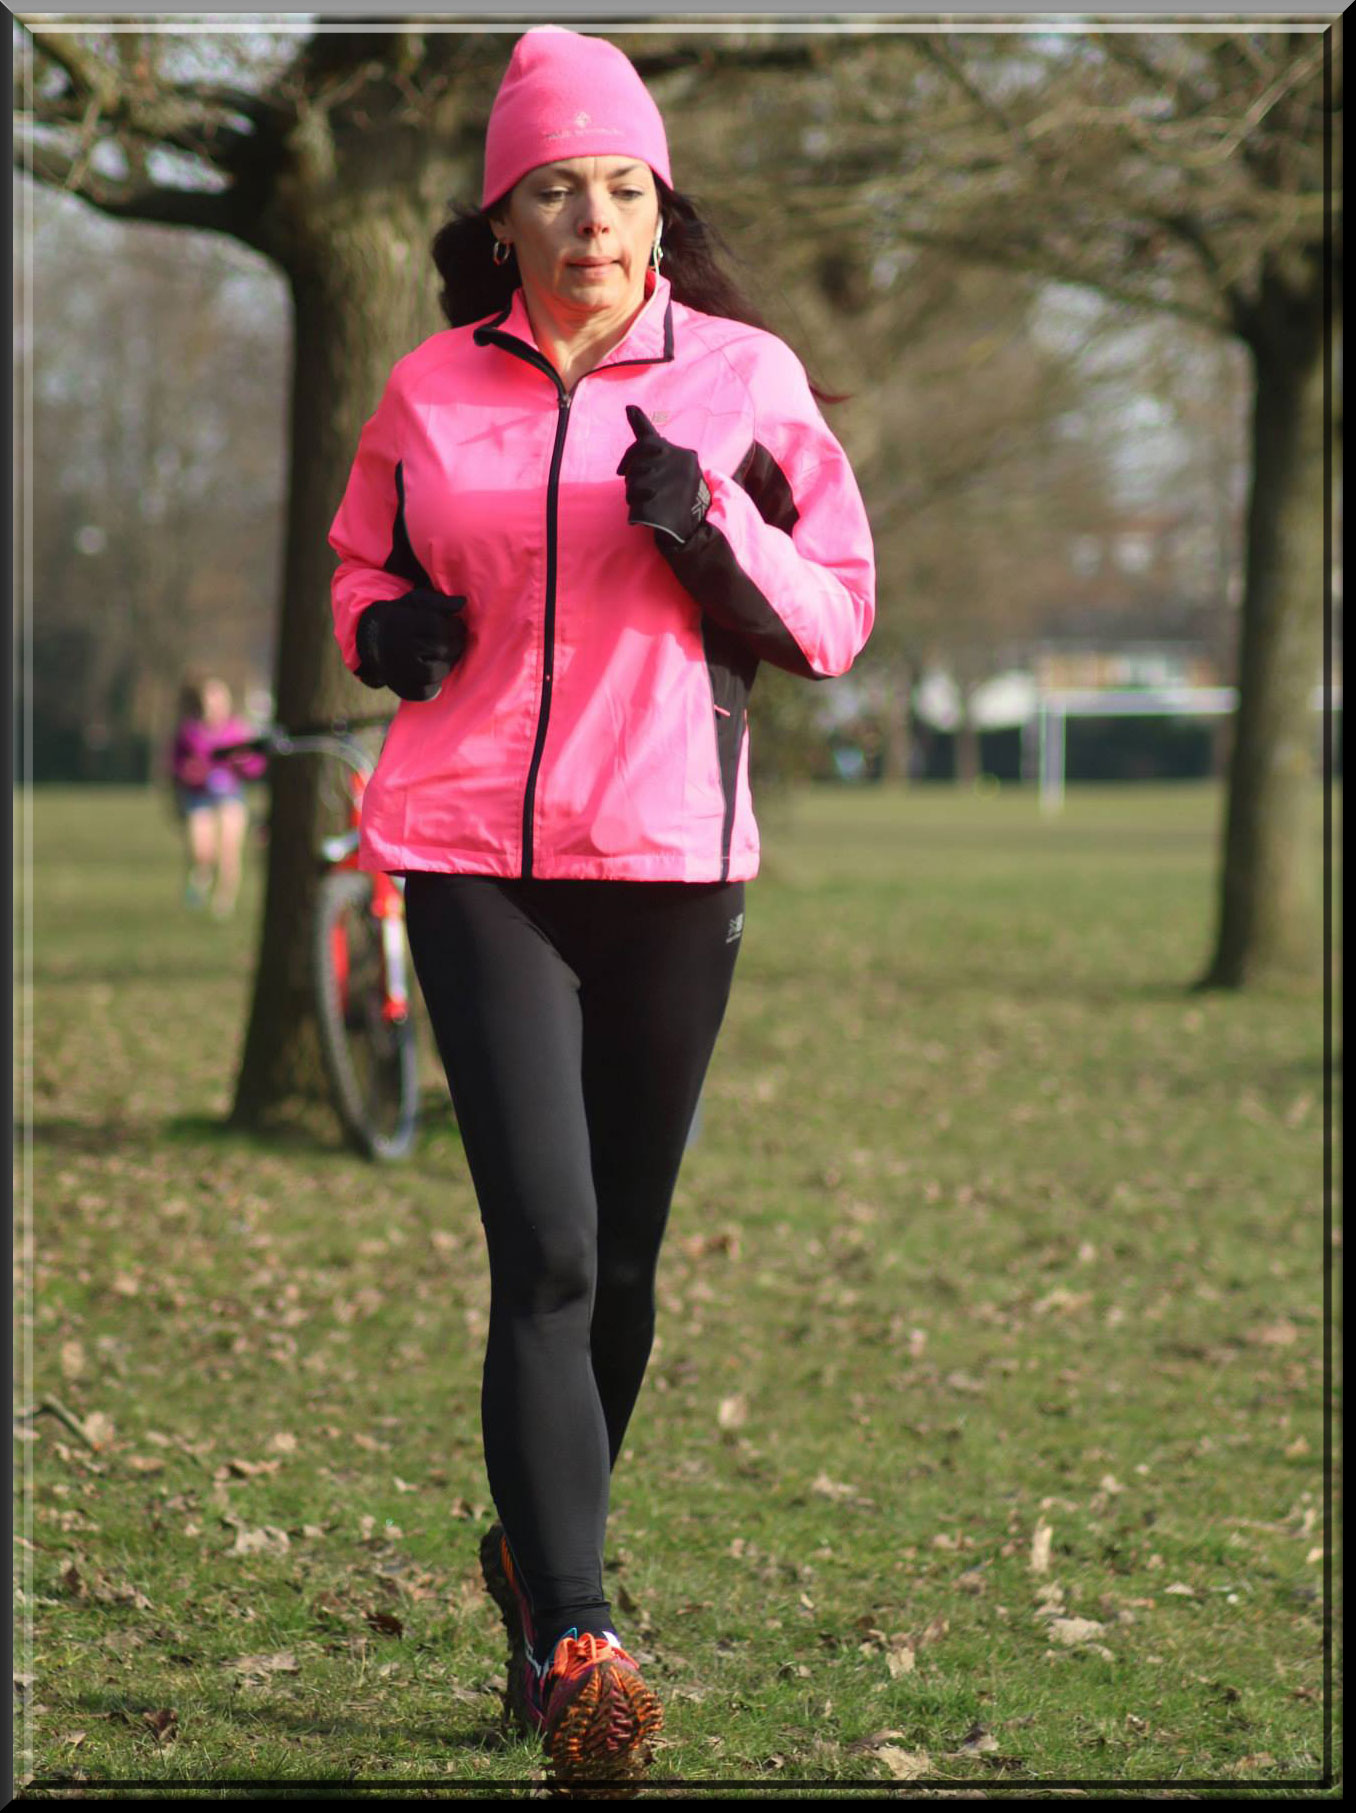 Kath has new goals to set personal records with running now. It's something she really enjoys with her husband and friends.